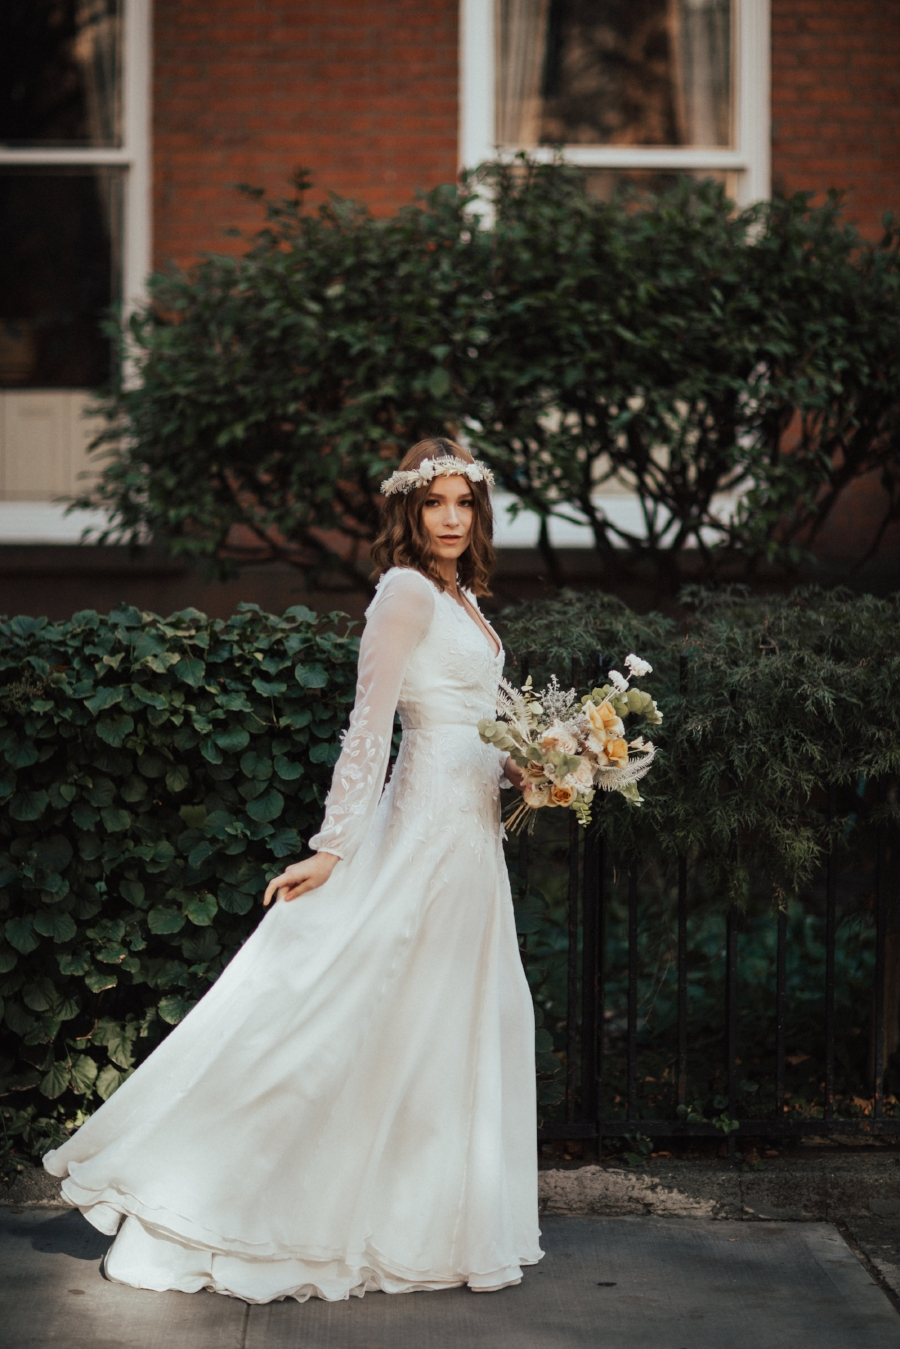 ivory-and-beau-bridal-boutique-marina-semone-trunk-show-marina-semone-wedding-gowns-vintage-inspired-wedding-gowns-1.jpg